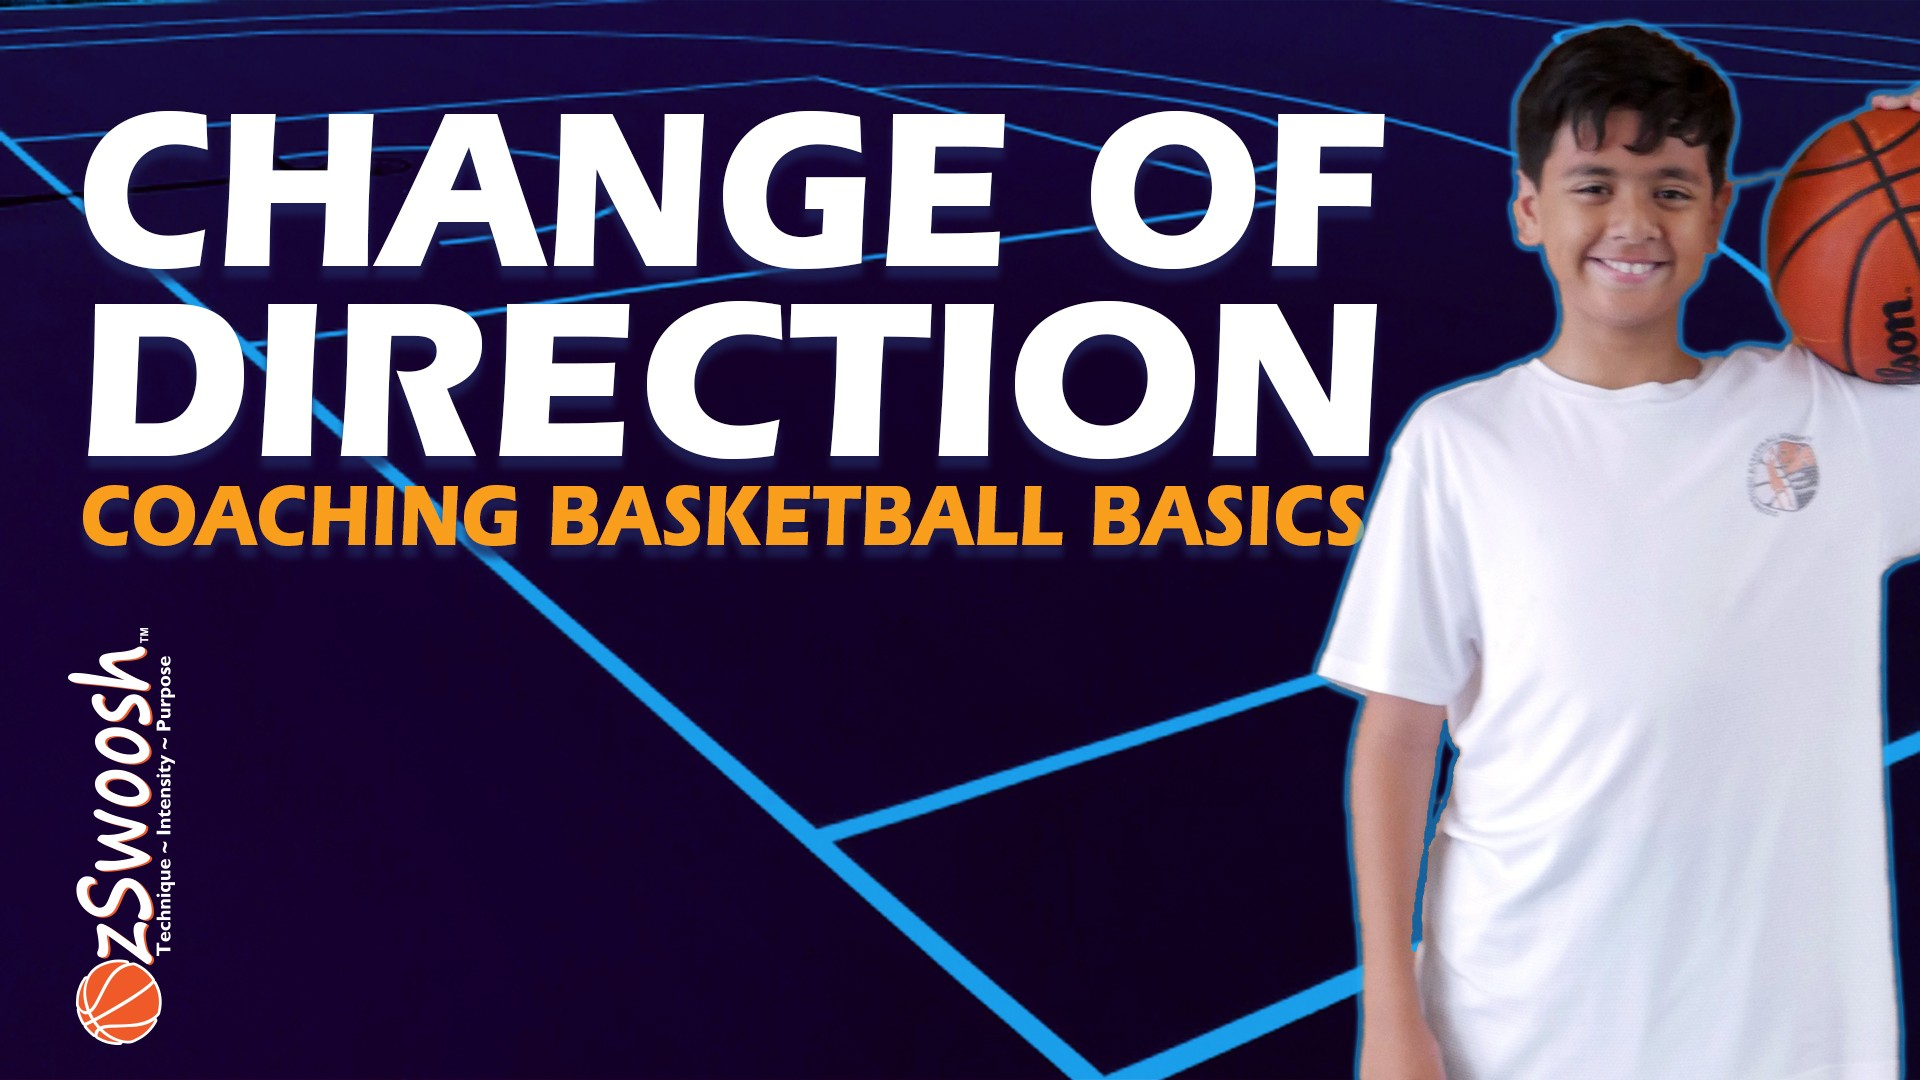 Change of direction running in basketball - Coaching Basketball Fundamentals